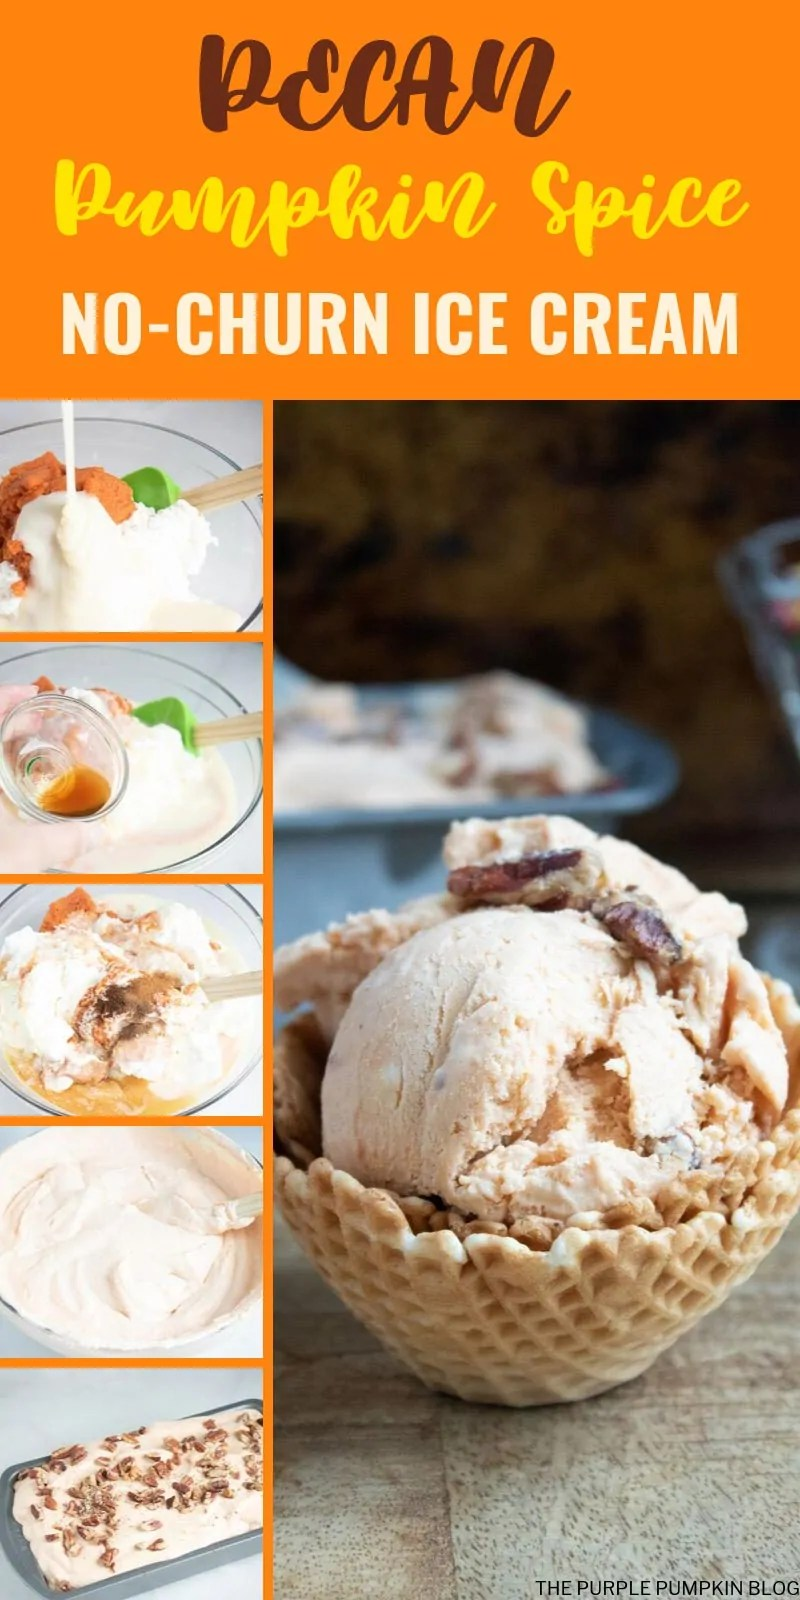 How to make Pecan Pumpkin Spice No-Churn Ice Cream